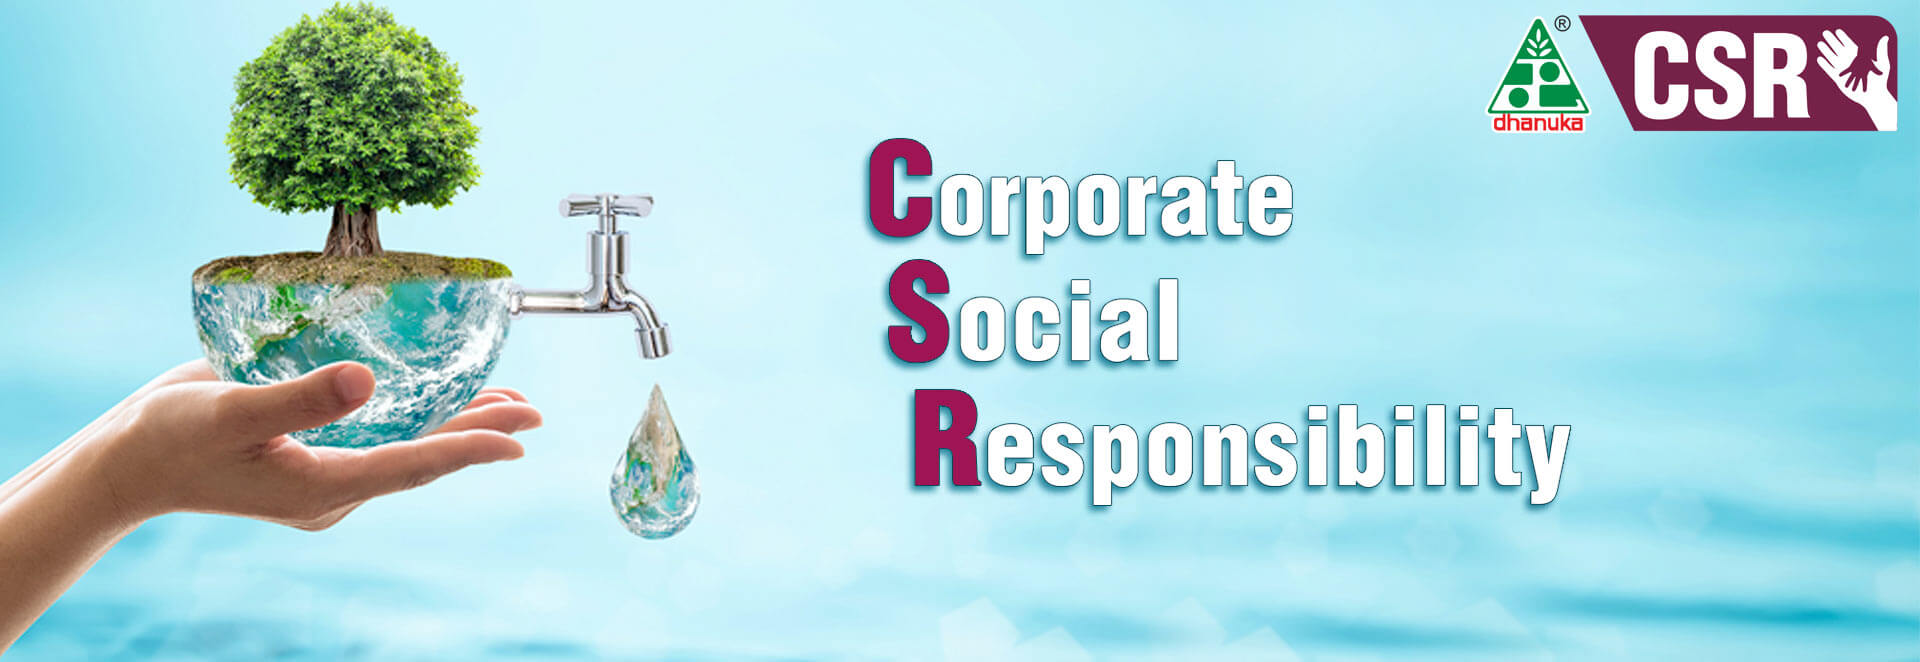 CSR desktop banner section 1 image